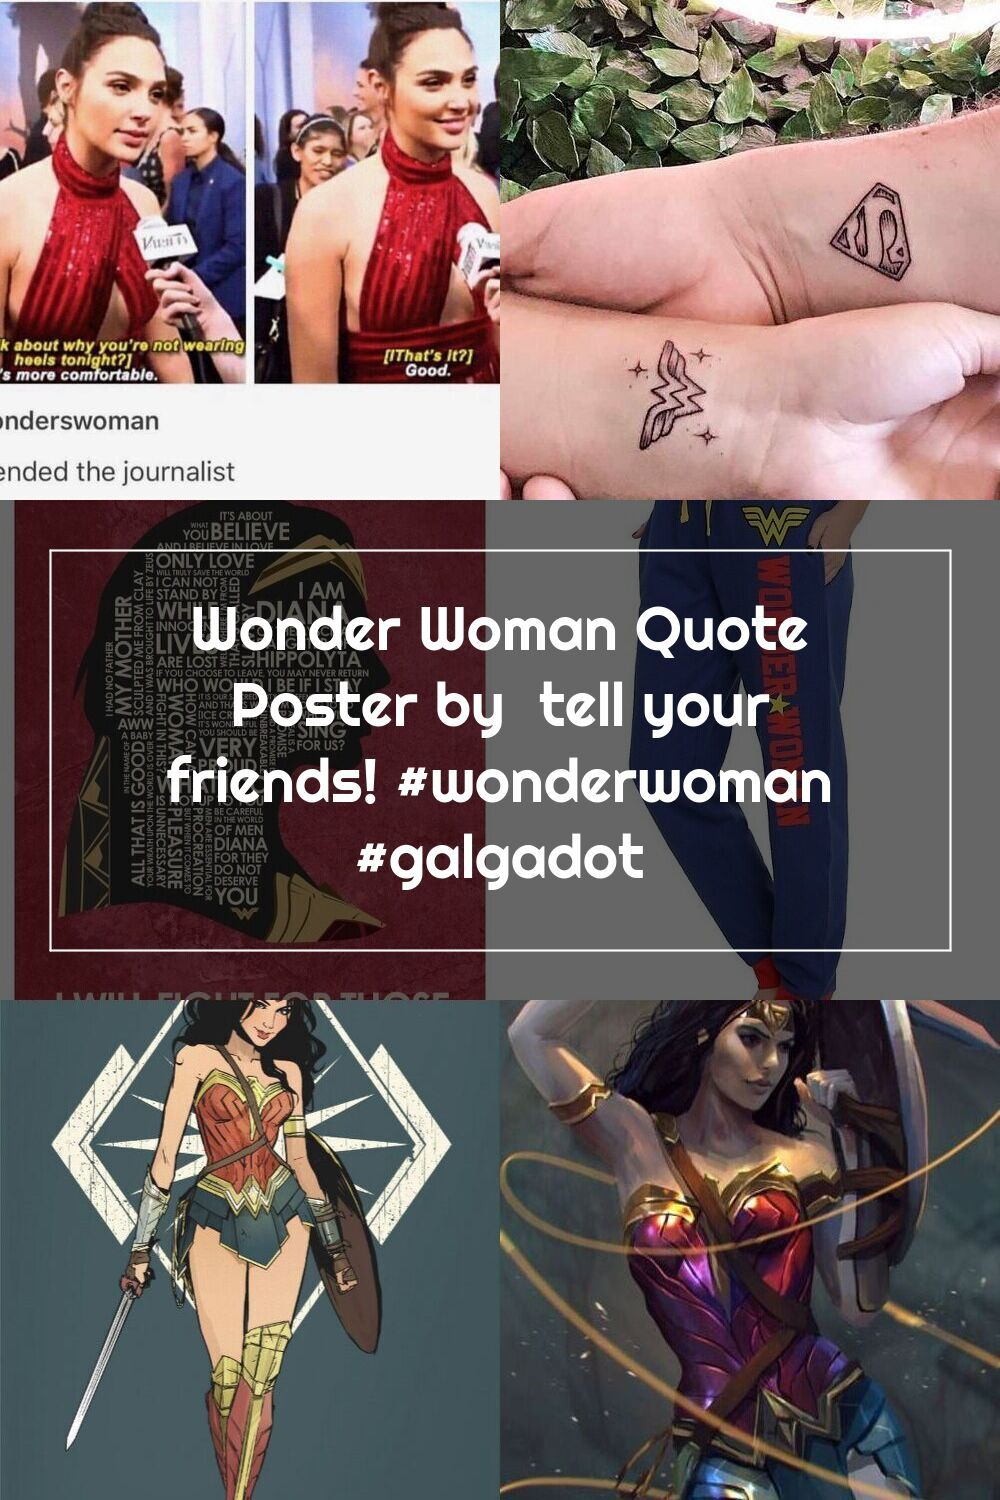 Wonder Woman Quote Poster By Tell Your Friends Wonderwoman Galgadot In 2020 Woman Quotes Wonder Woman Quotes Quote Posters